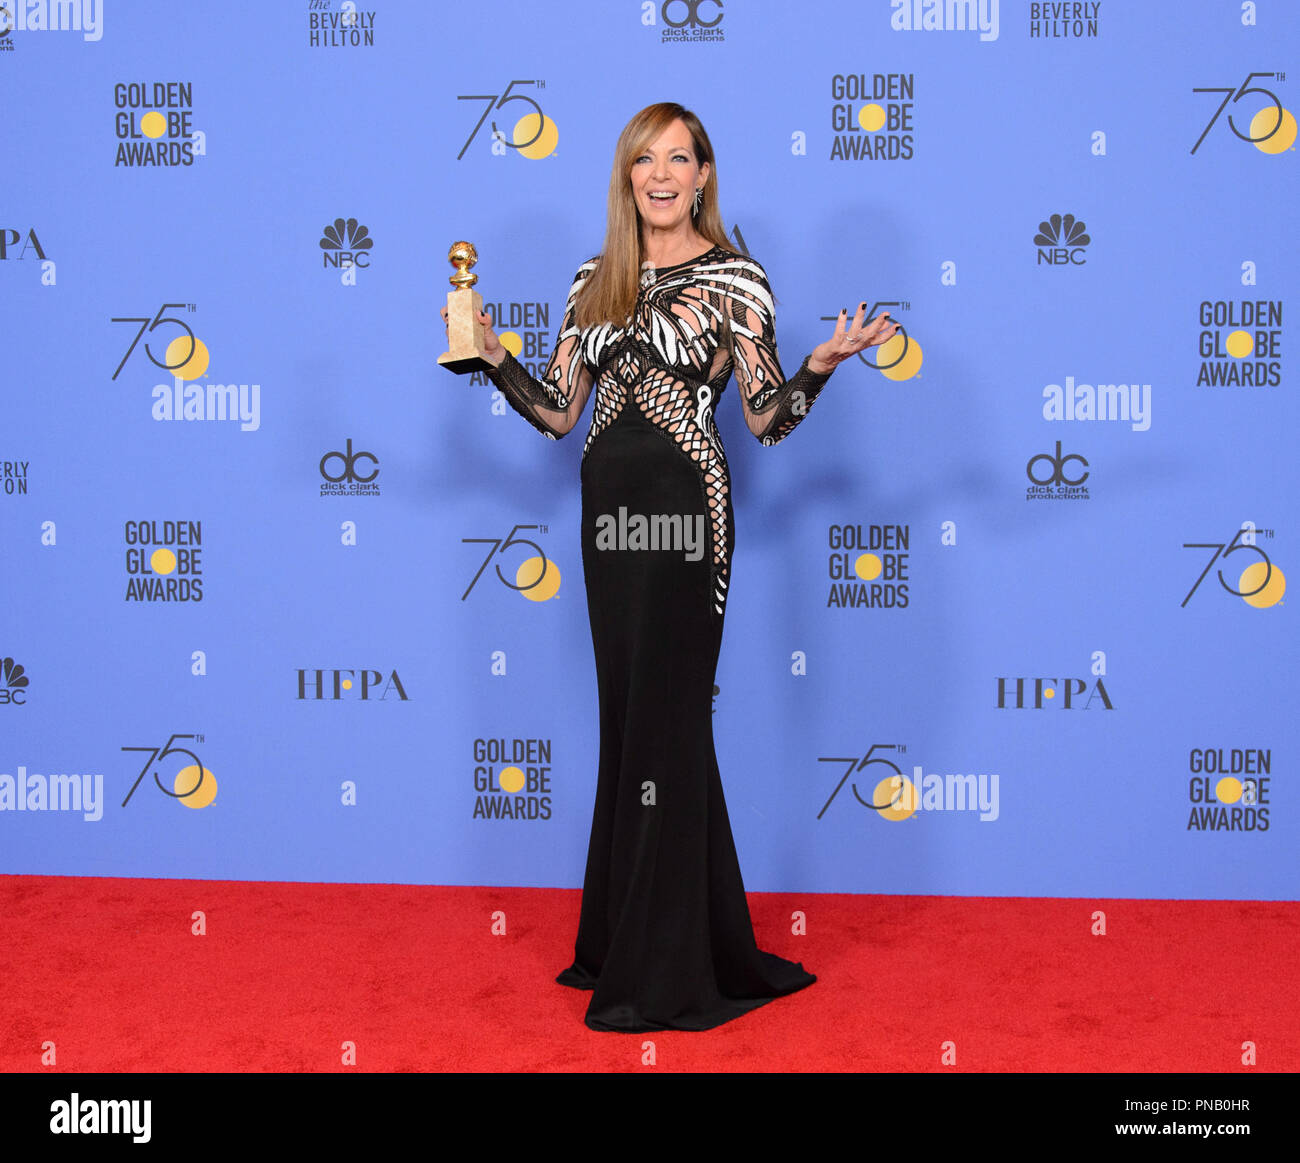 """After winning the category of BEST PERFORMANCE BY AN ACTRESS IN A SUPPORTING ROLE IN A MOTION PICTURE for her work in """"I, Tonya,"""" actress Allison Janney poses backstage in the press room with her Golden Globe Award at the 75th Annual Golden Globe Awards at the Beverly Hilton in Beverly Hills, CA on Sunday, January 7, 2018. Stock Photo"""